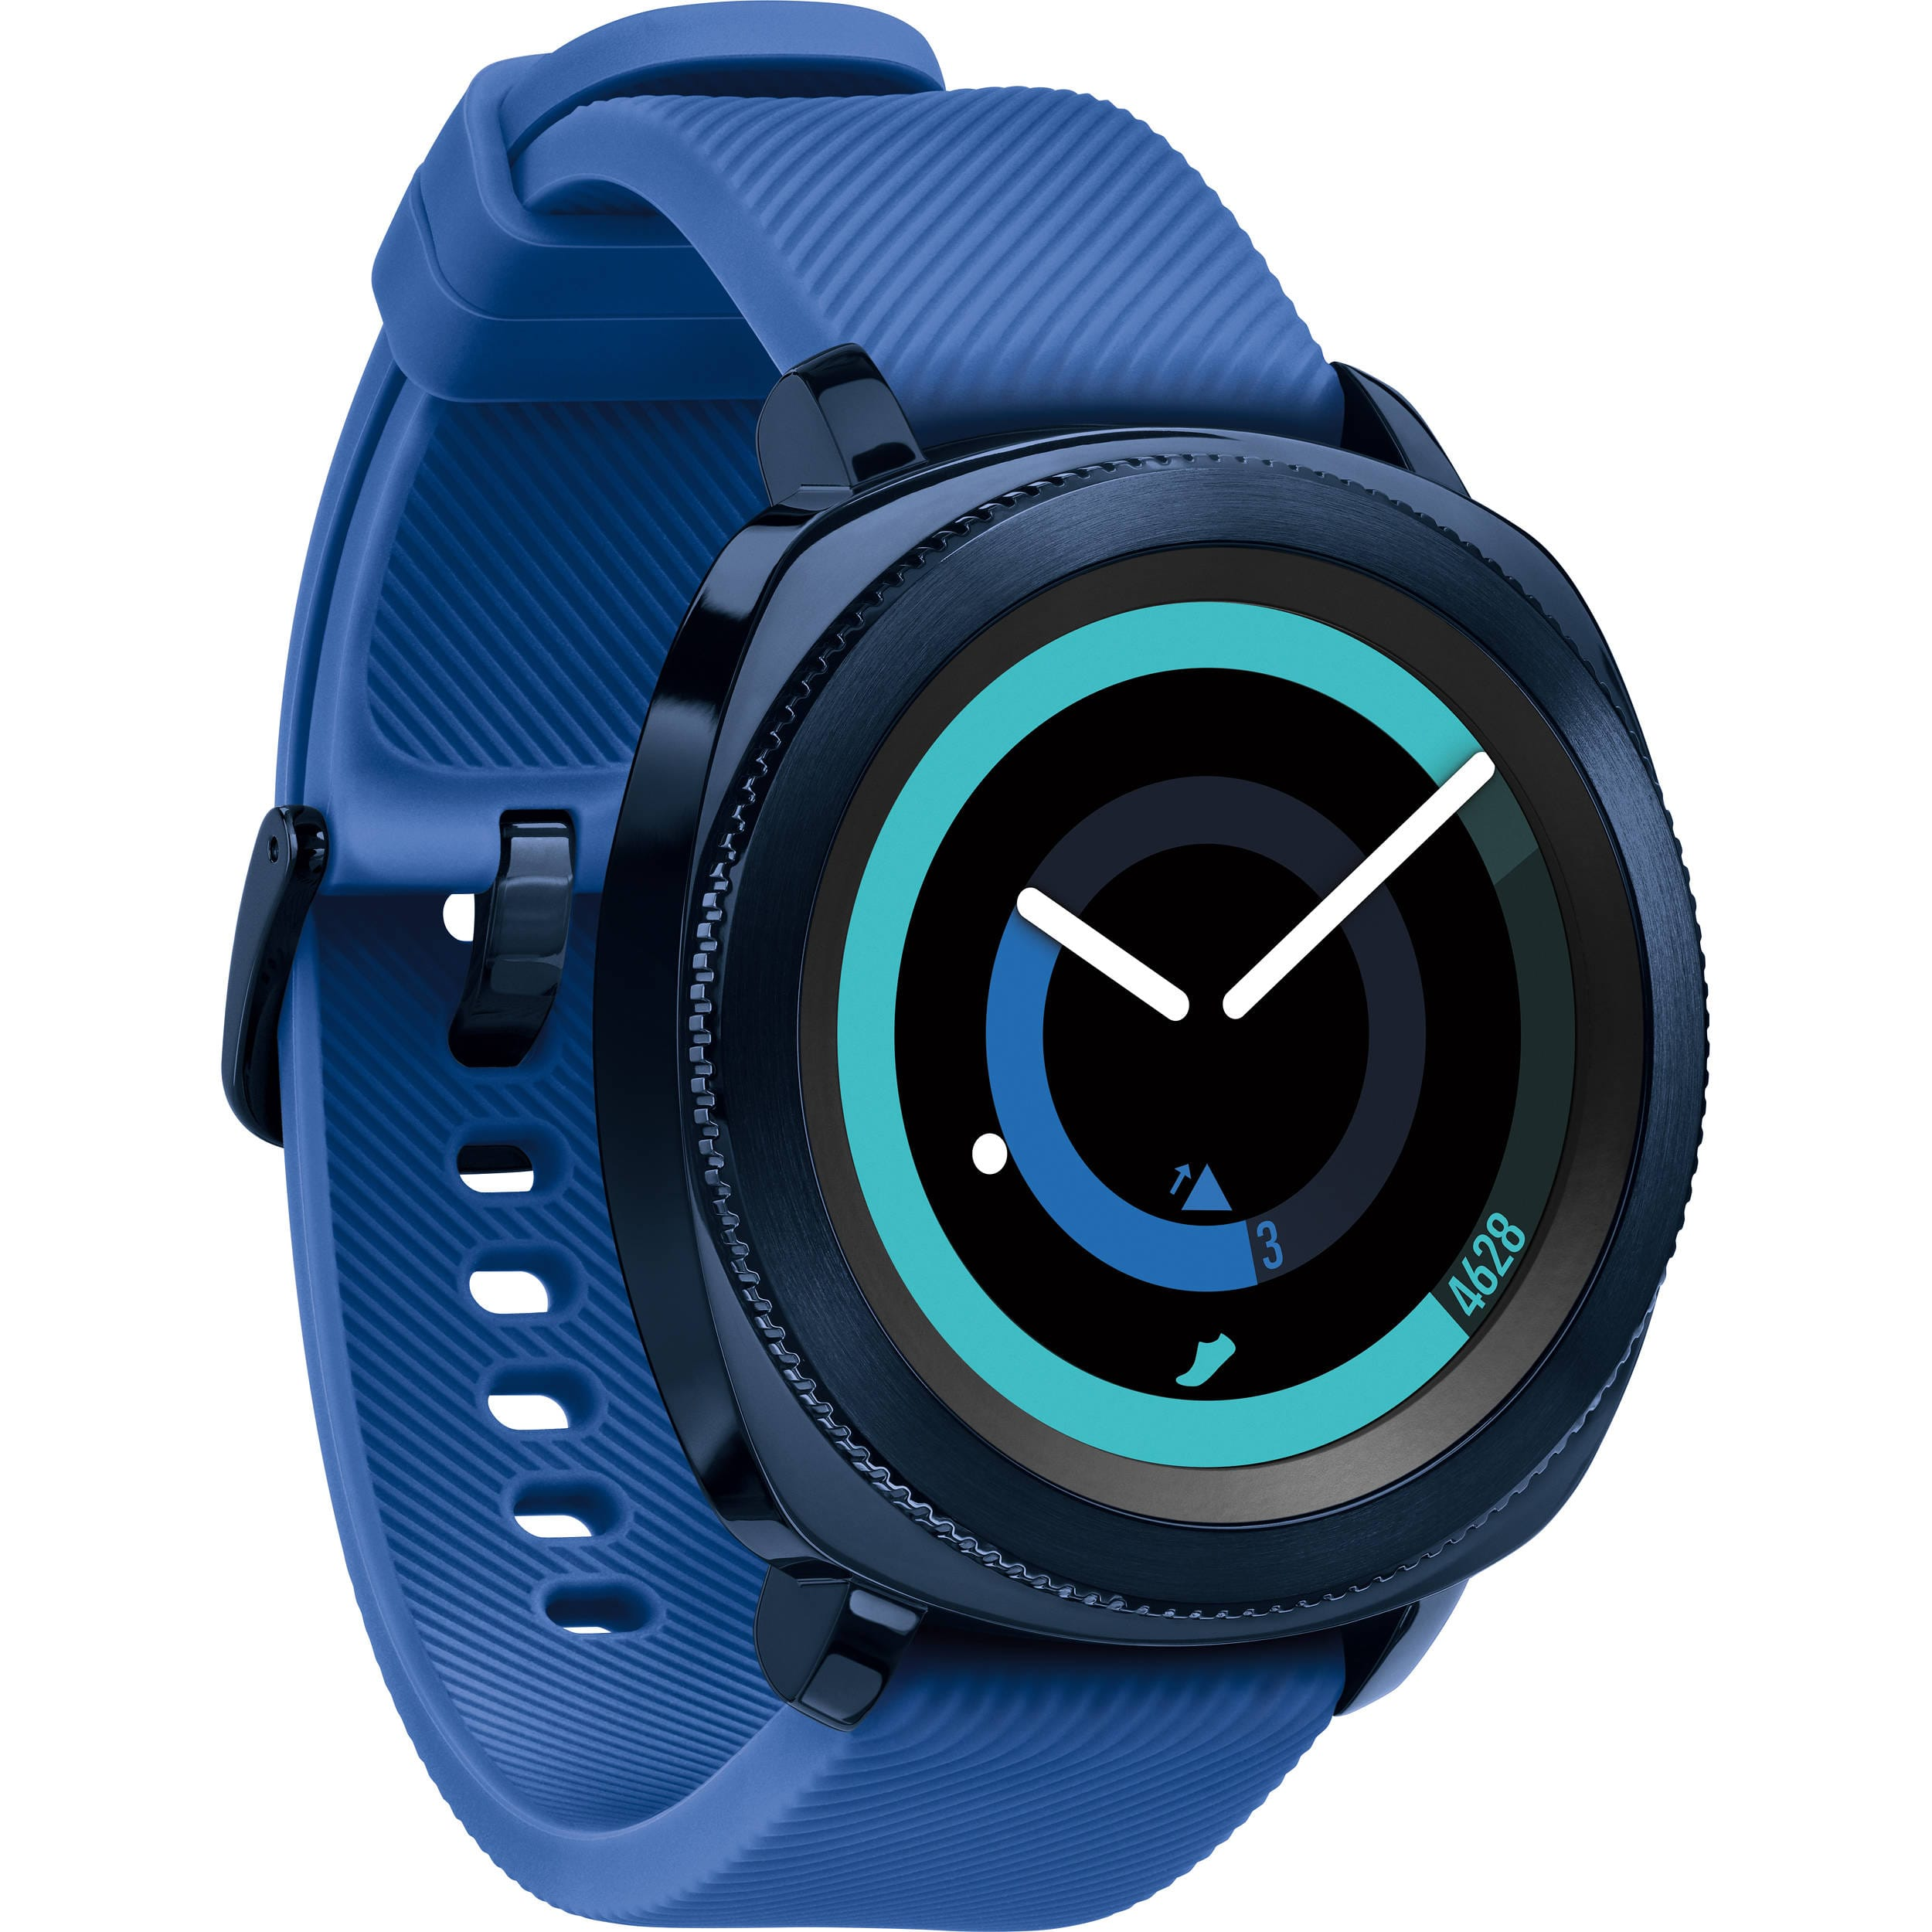 Samsung Gear Sport (Blue and Black) - $99 YMMV Walmart B&M